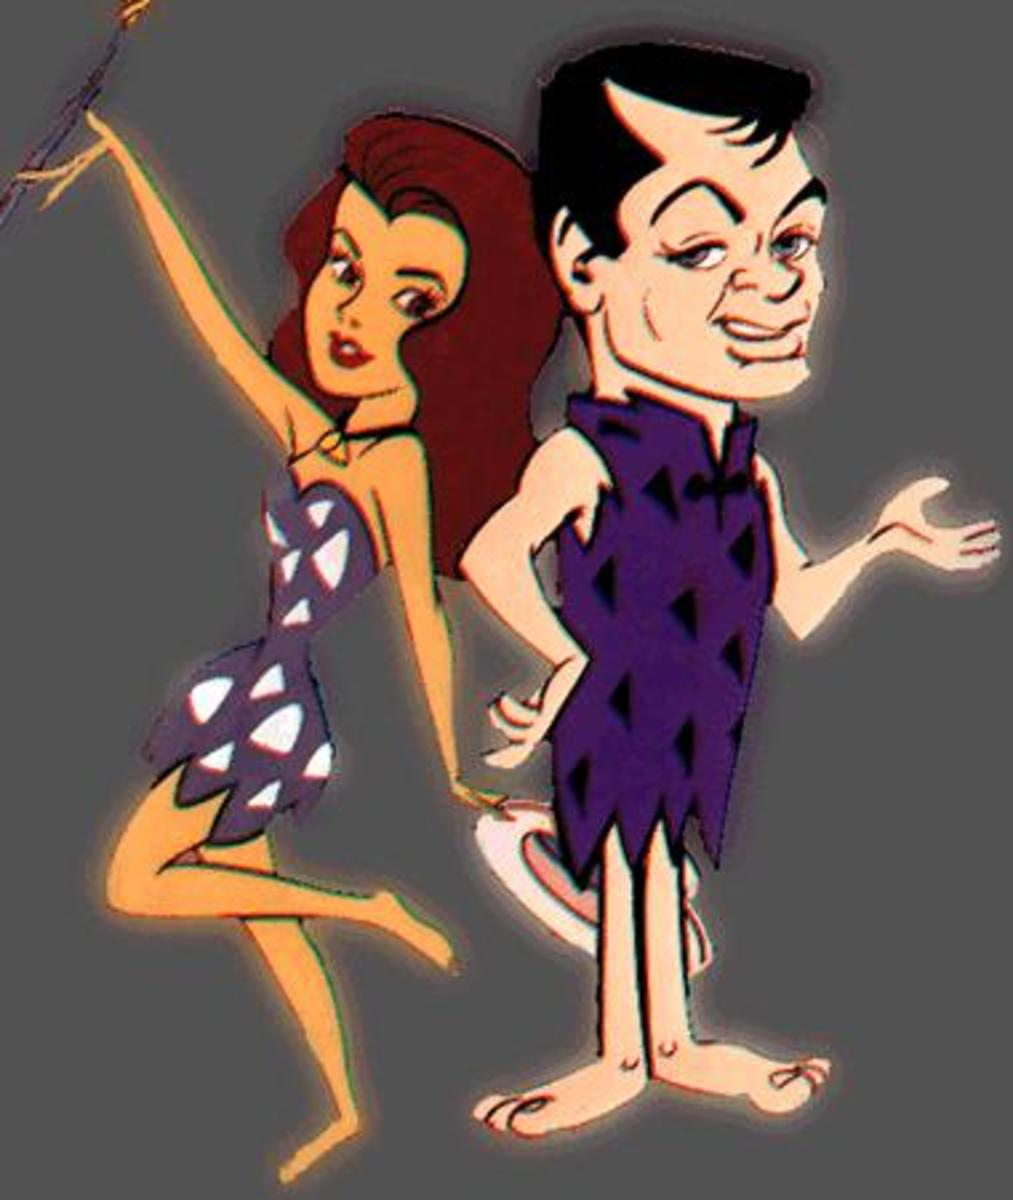 The Flintstones had such guest stars as Ann-Margret and Tony Curtis